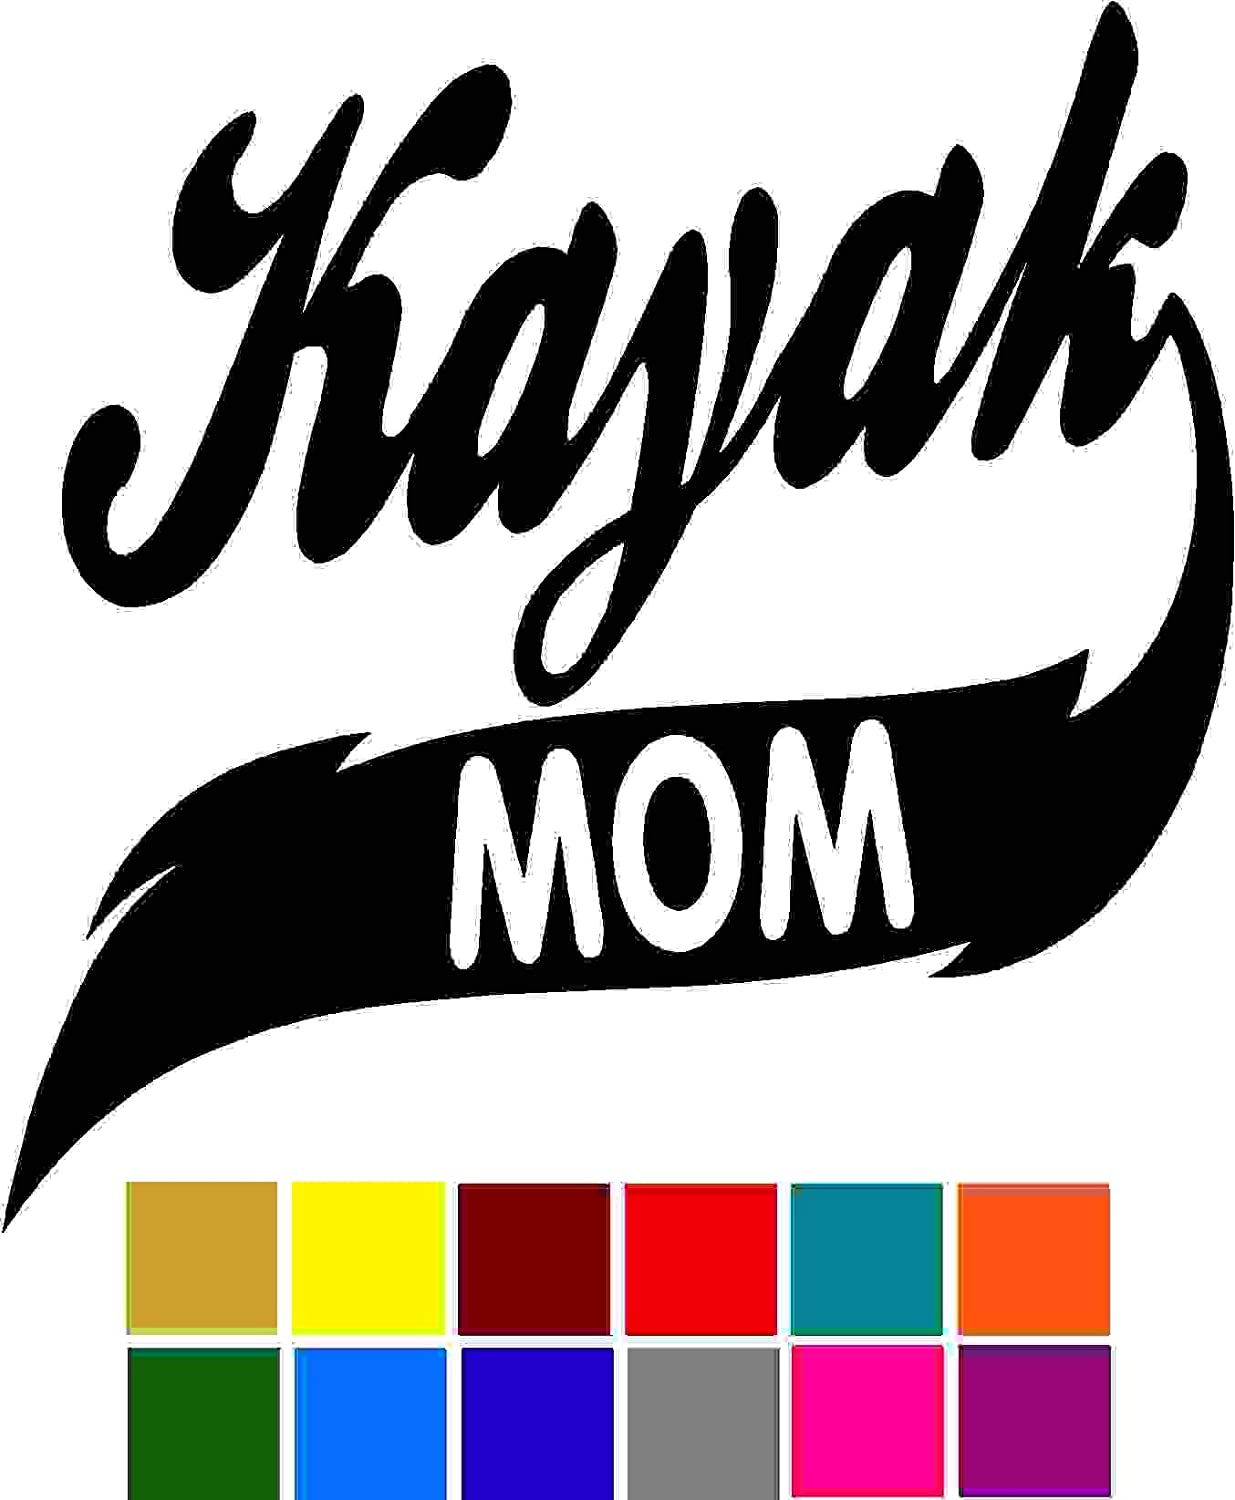 Sports Kayak Mom Decal Sticker Vinyl Car Window Tumblers Wall Laptops Cellphones Phones Tablets Ipads Helmets Motorcycles Computer Towers V and T Gifts